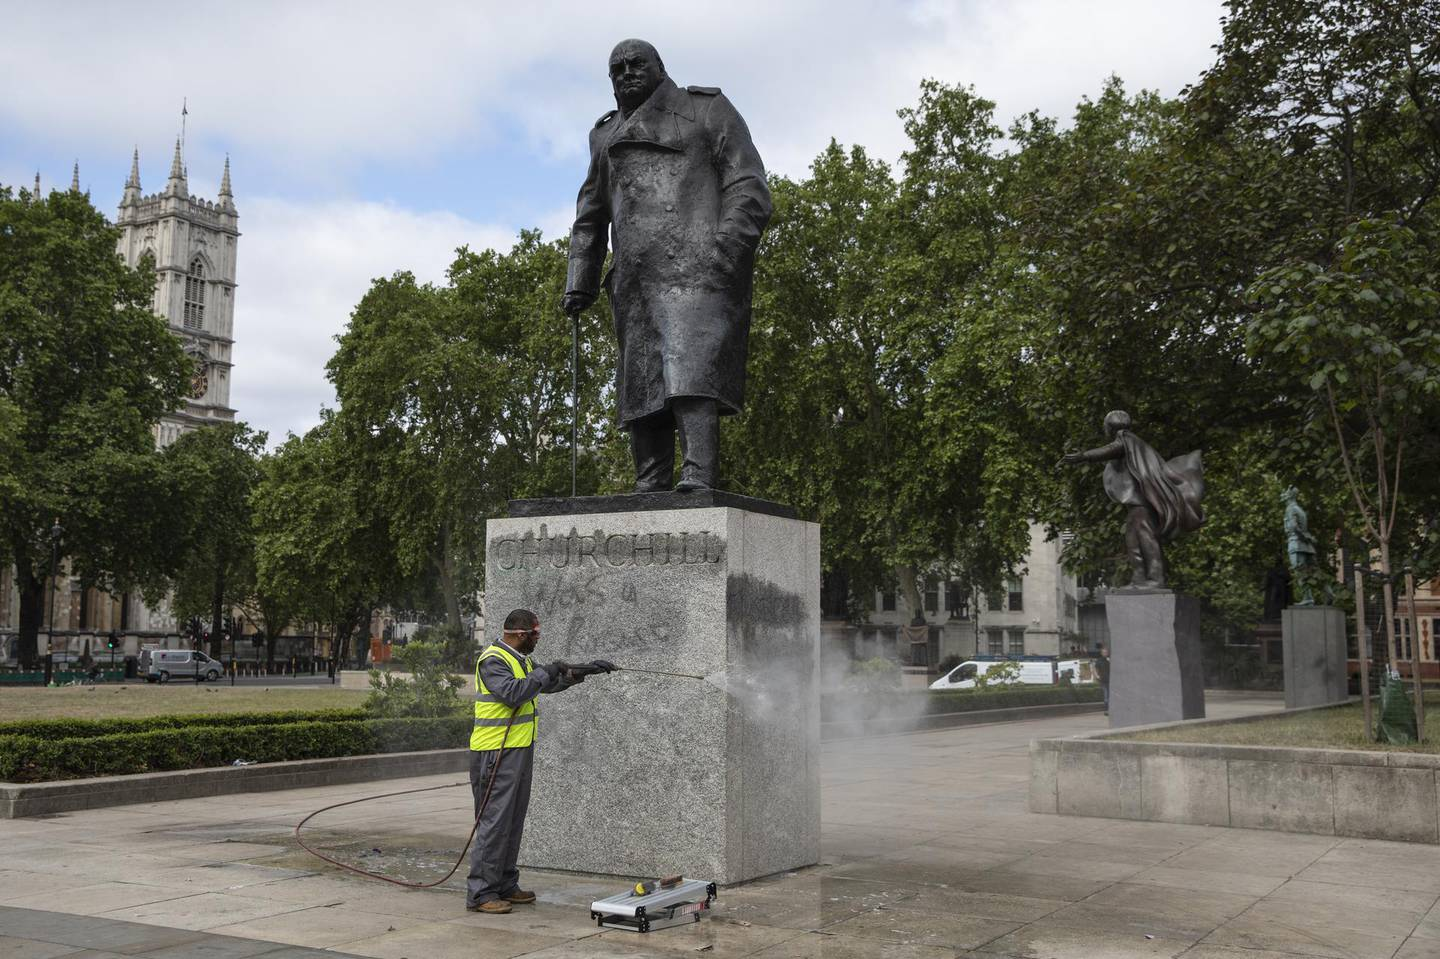 """LONDON, ENGLAND - JUNE 08: A worker cleans the Churchill statue in Parliament Square that had been spray painted with the words 'was a racist' on June 08, 2020 in London, England. Outside the Houses of Parliament, the statue of former Prime Minister Winston Churchill was spray-painted with the words """"was a racist"""" amid anti-racism protests over the weekend. In Bristol, protesters toppled a statue of Edward Colston, a 17th-century slave-trader, and tossed it into the harbor. (Photo by Dan Kitwood/Getty Images)"""